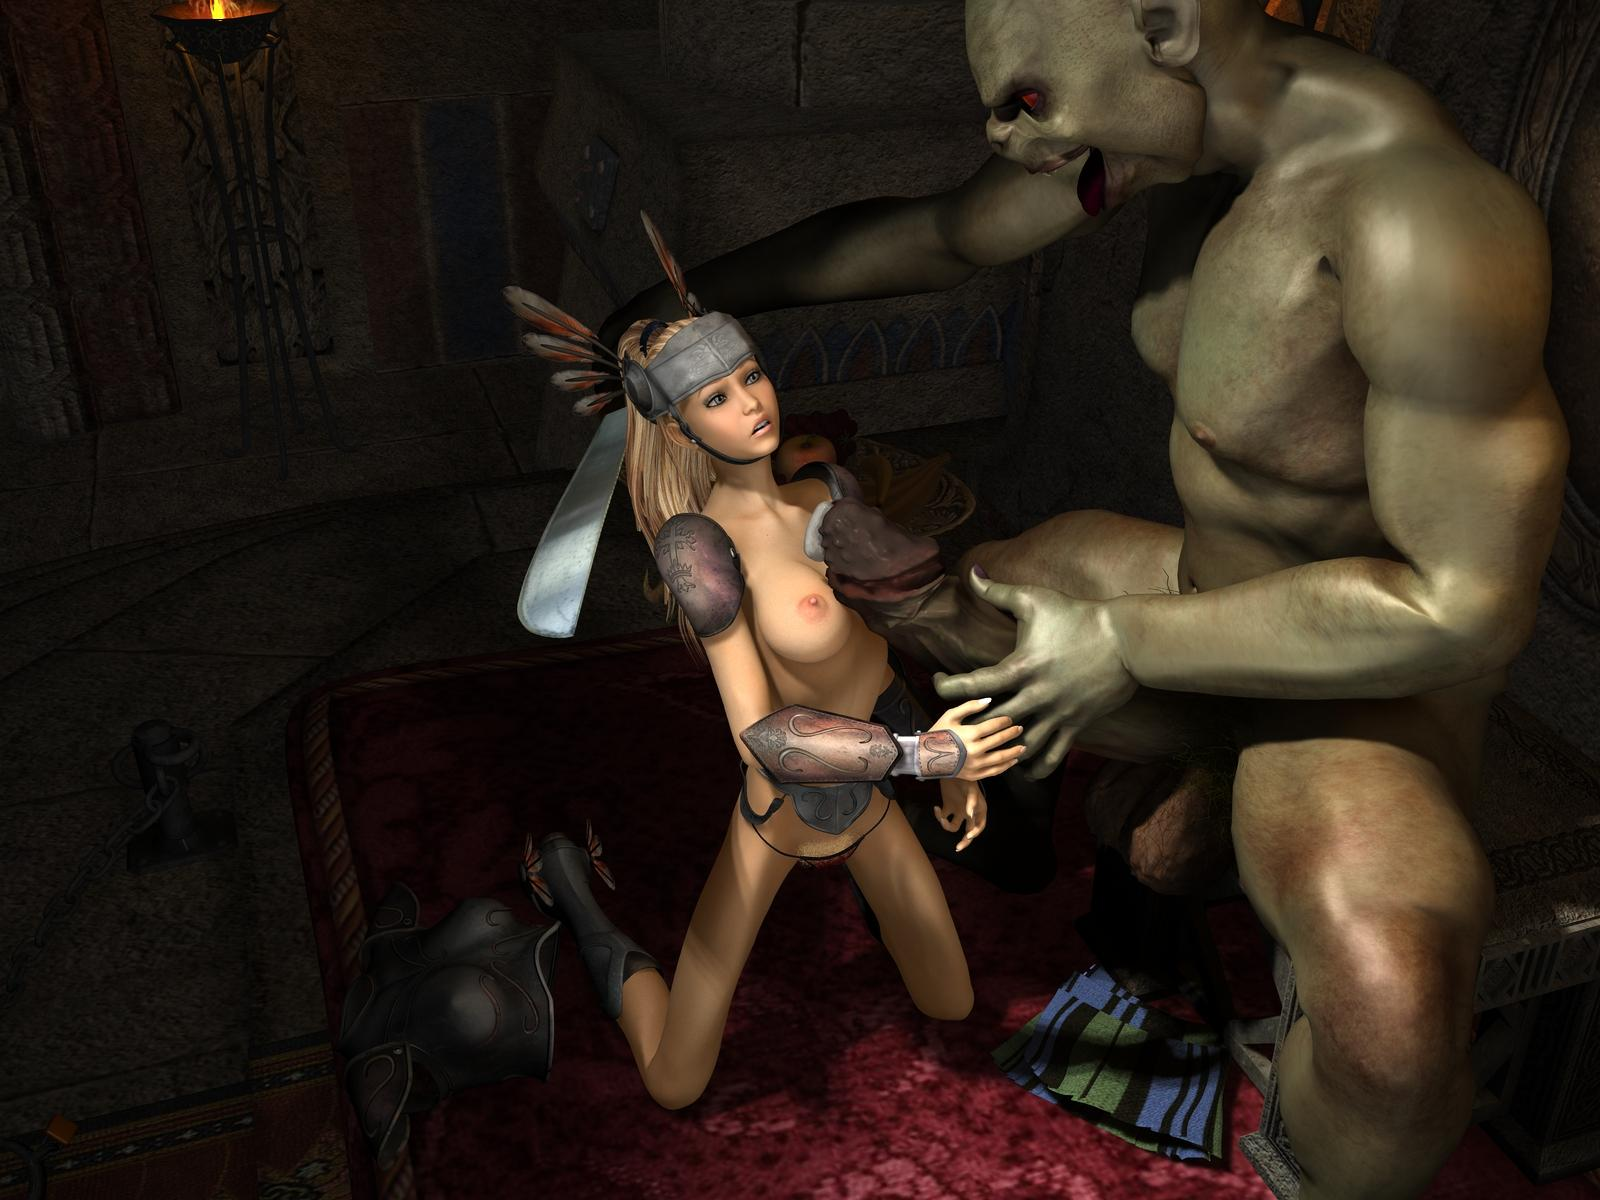 3d elf fucking goblin wallpaper picture nackt extreme women